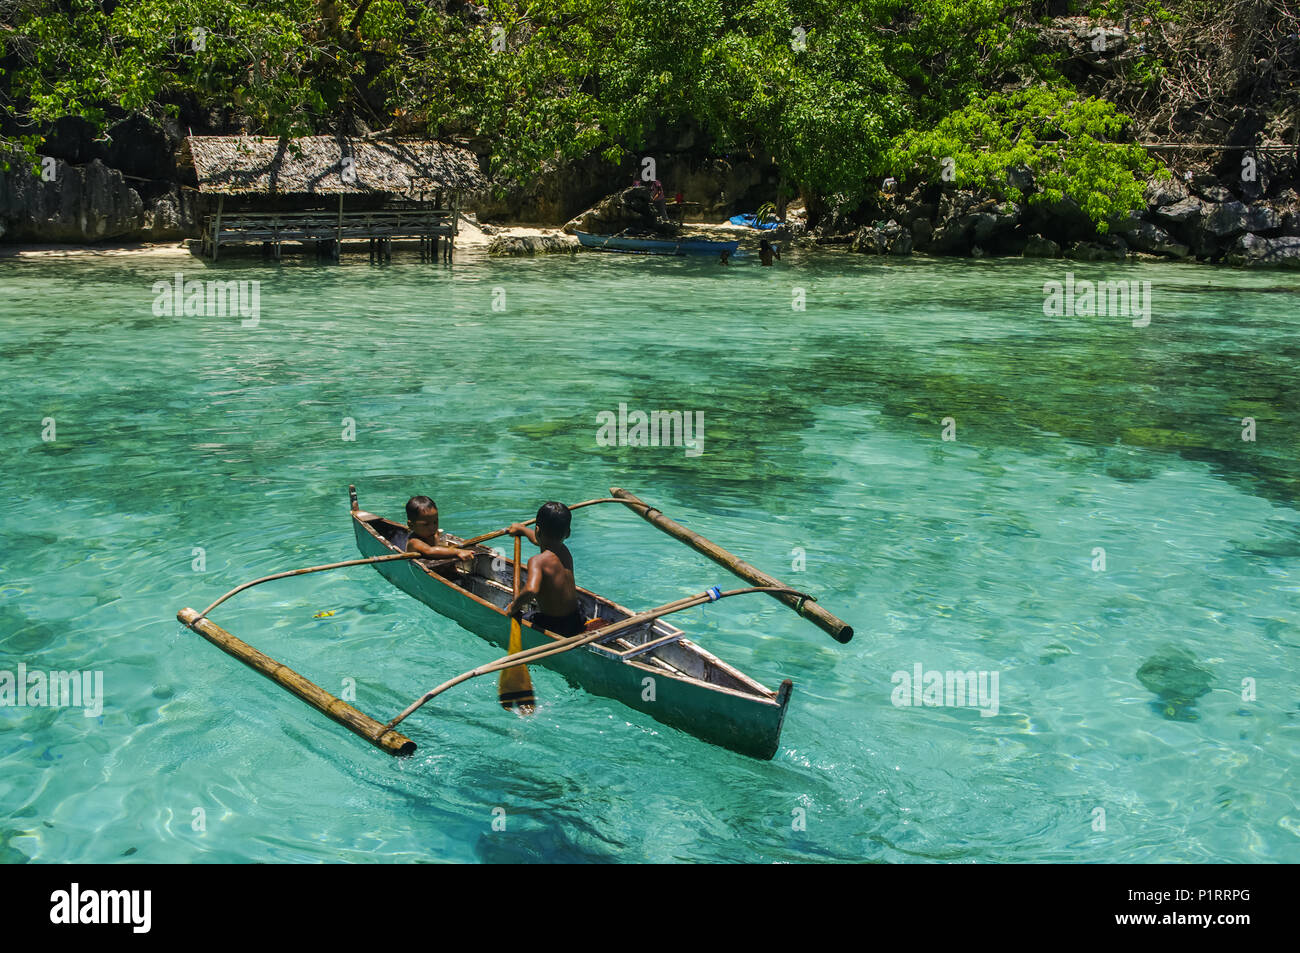 Boys paddling in an outrigger canoe, fishing in the turquoise waters of the Indian Ocean; Andaman Islands, India - Stock Image